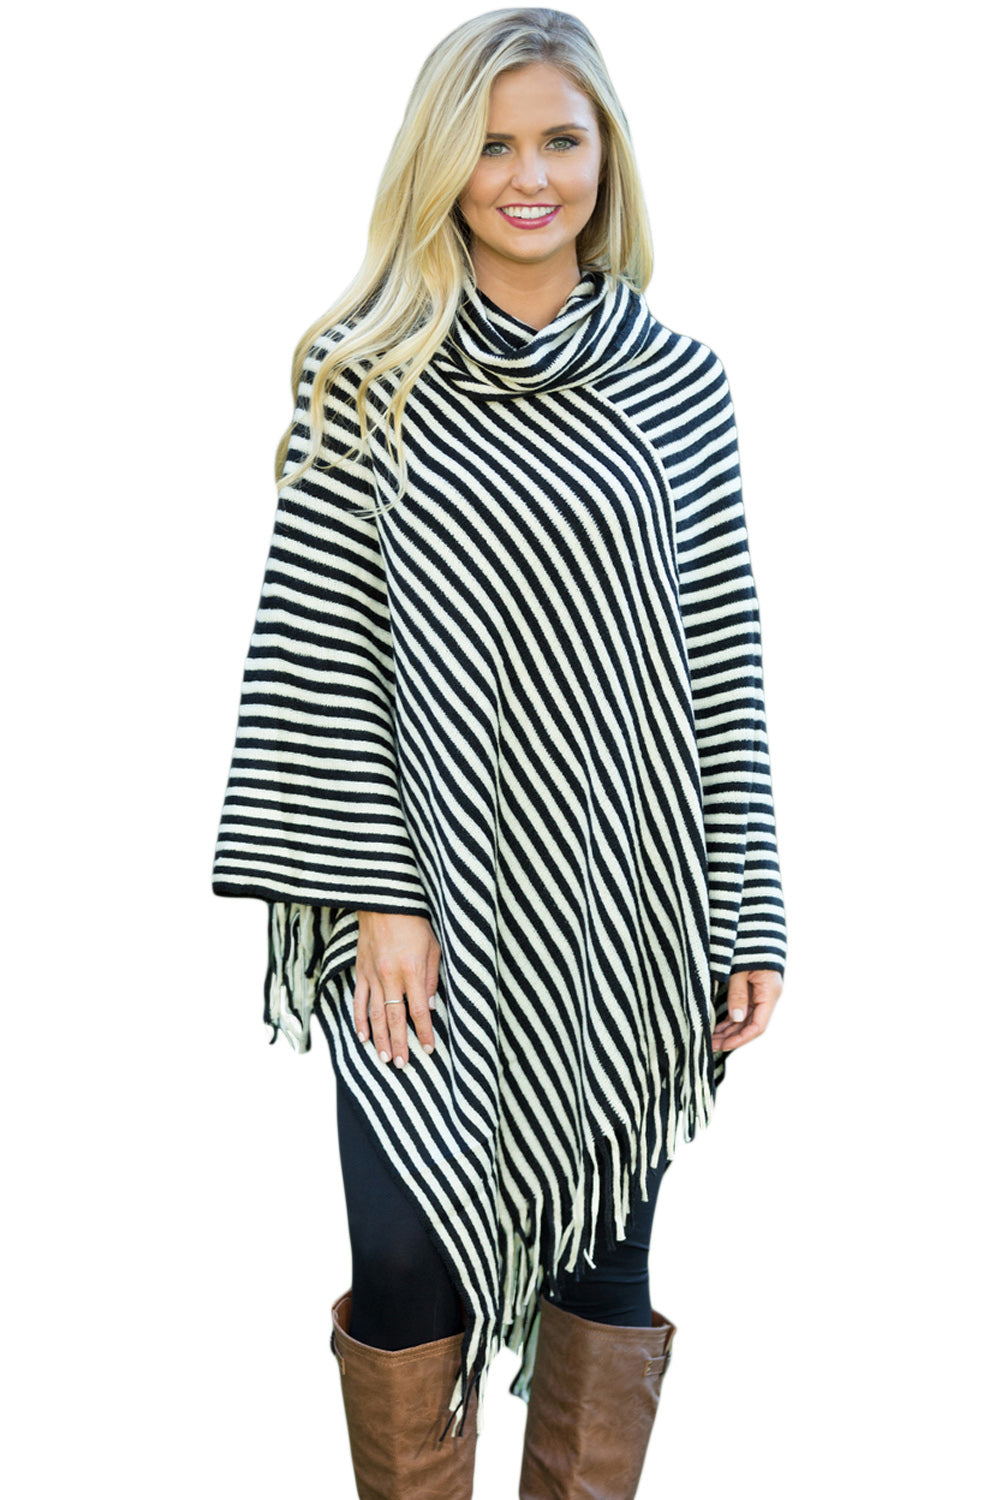 Chicloth Black White Stripes Cowl Neck Poncho Sweater